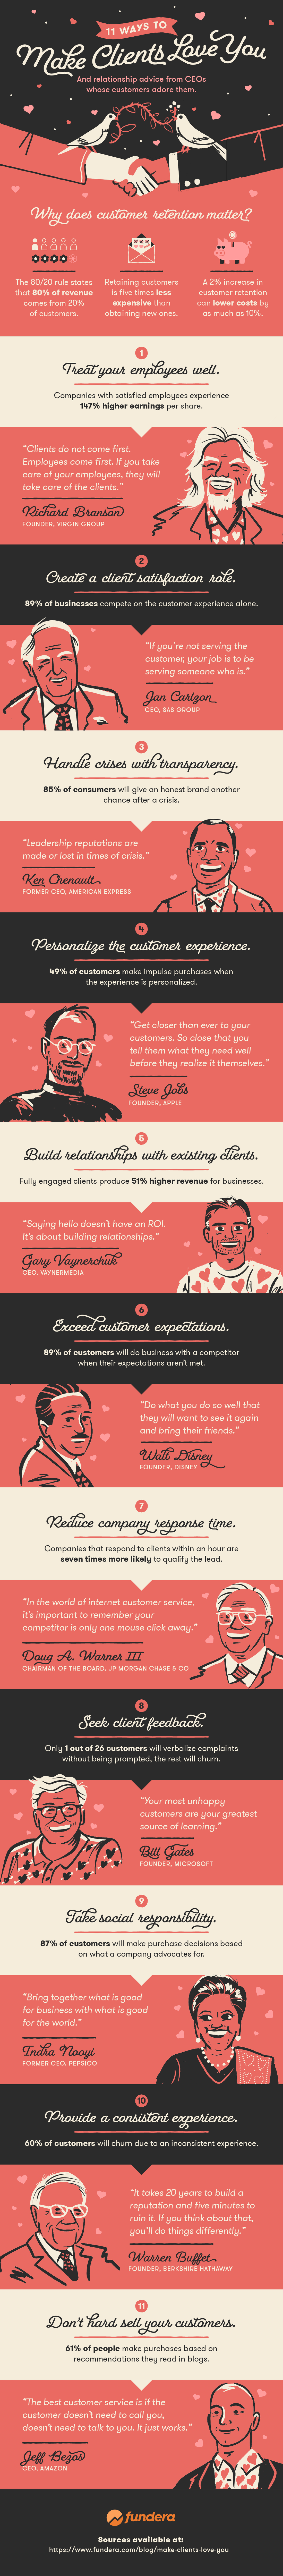 Loyalty marketing infographic